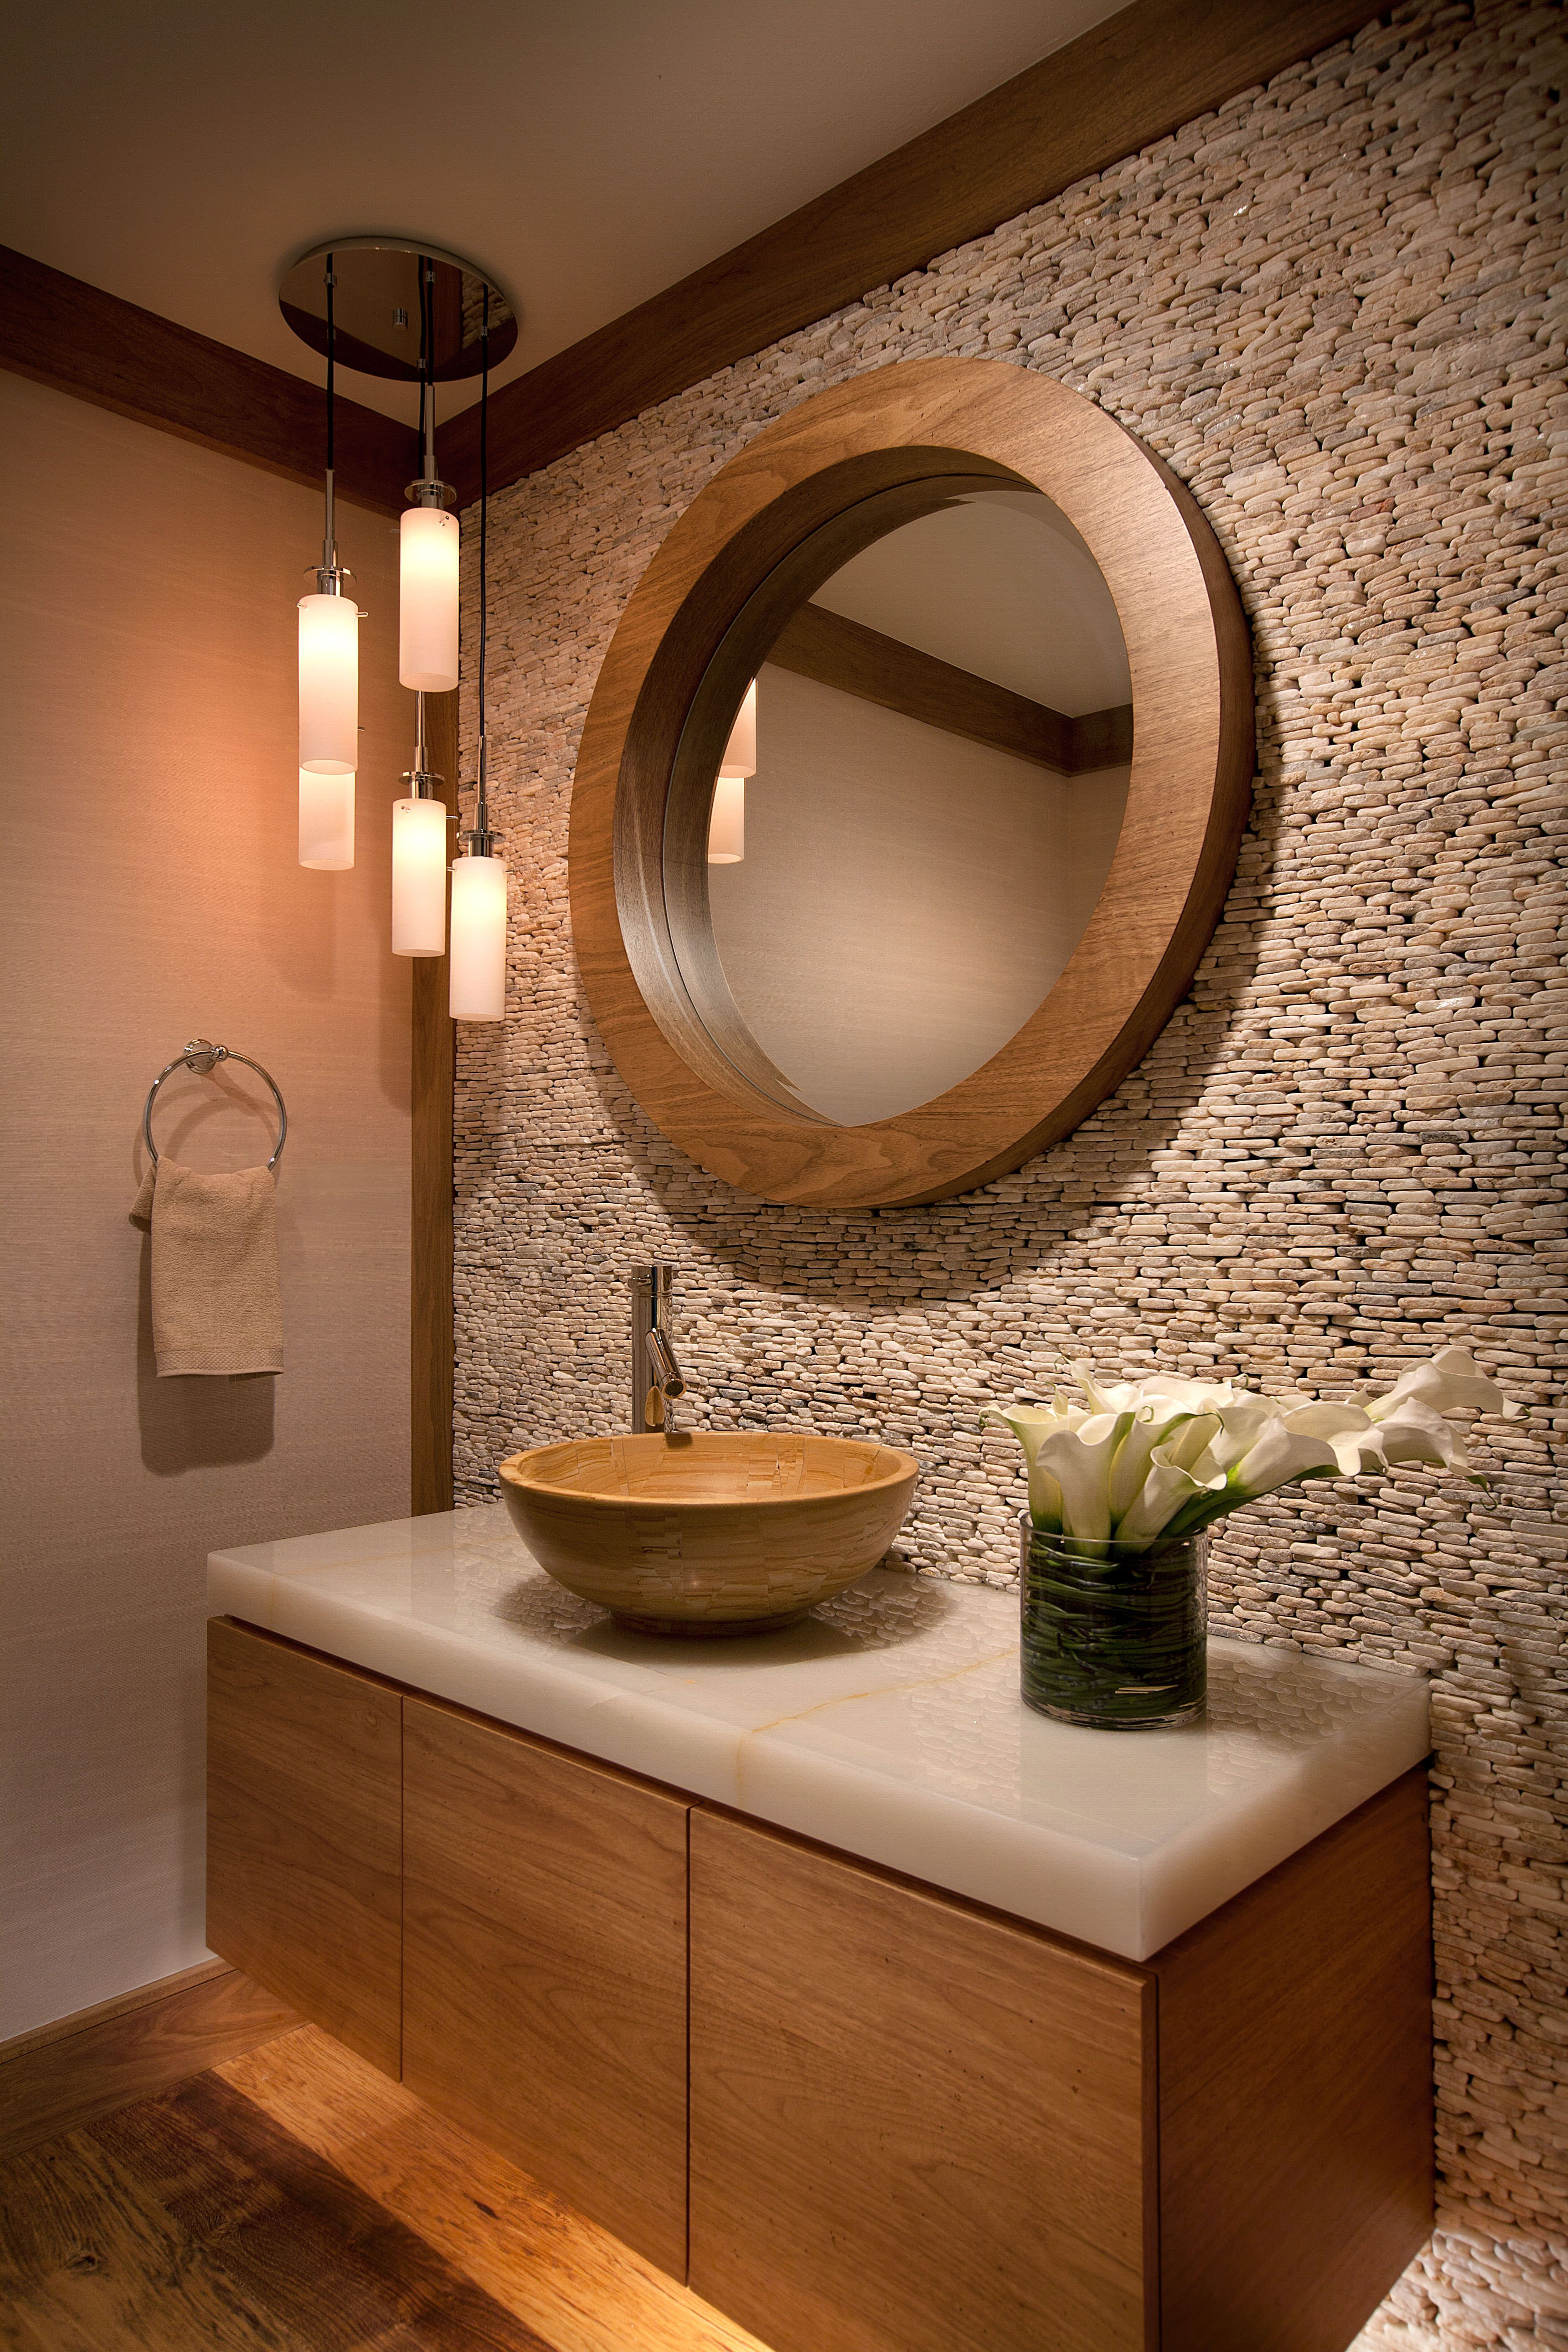 Earth tones and textures inspire this space and make a statement W